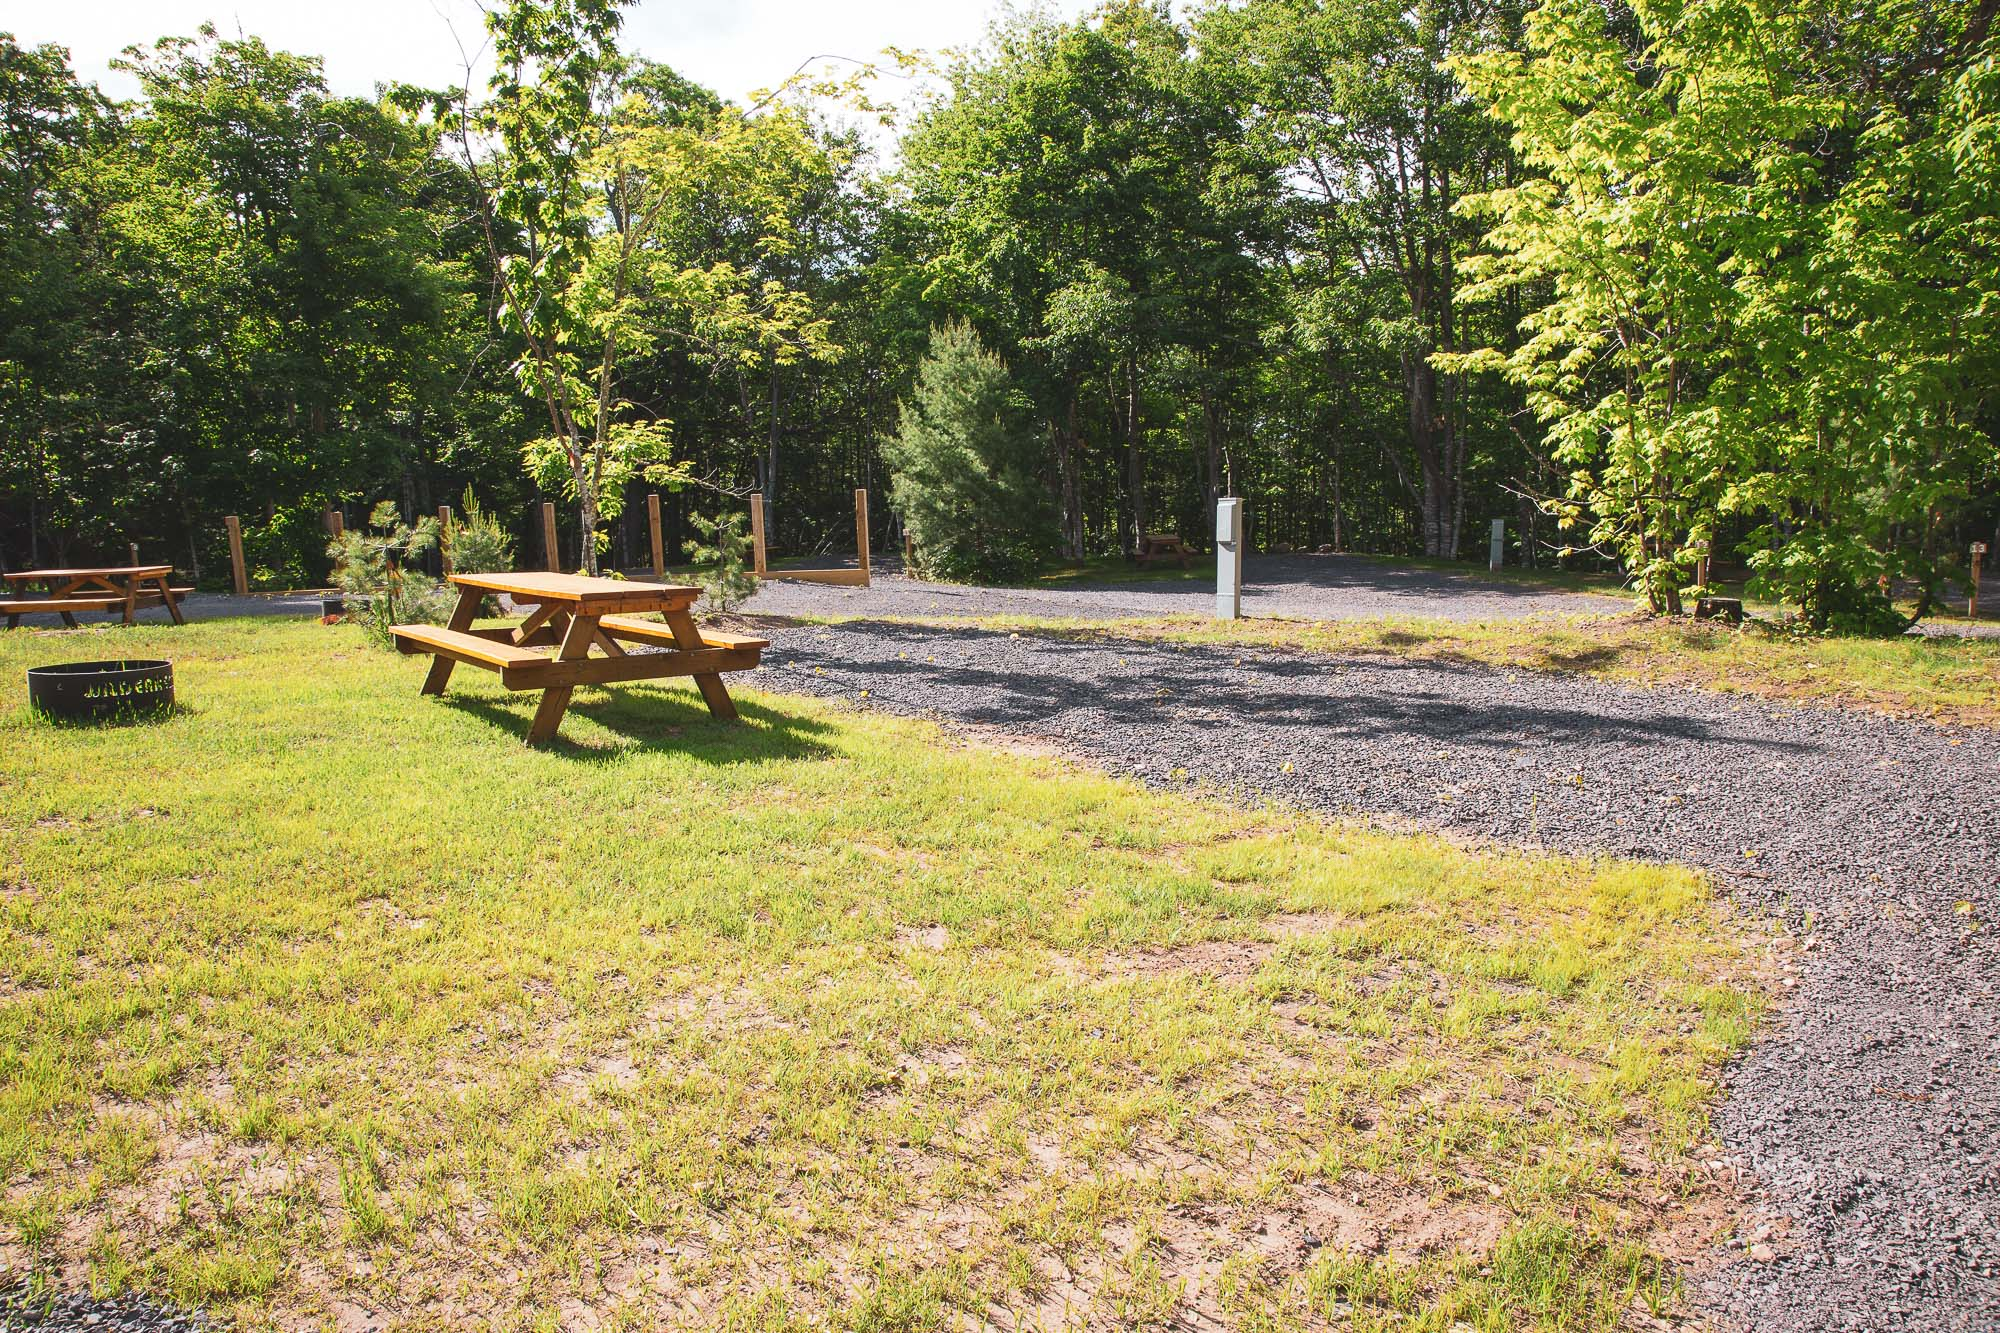 Photo of Campground Site 14 at the Wilderness Resort in Lac La Belle Michigan